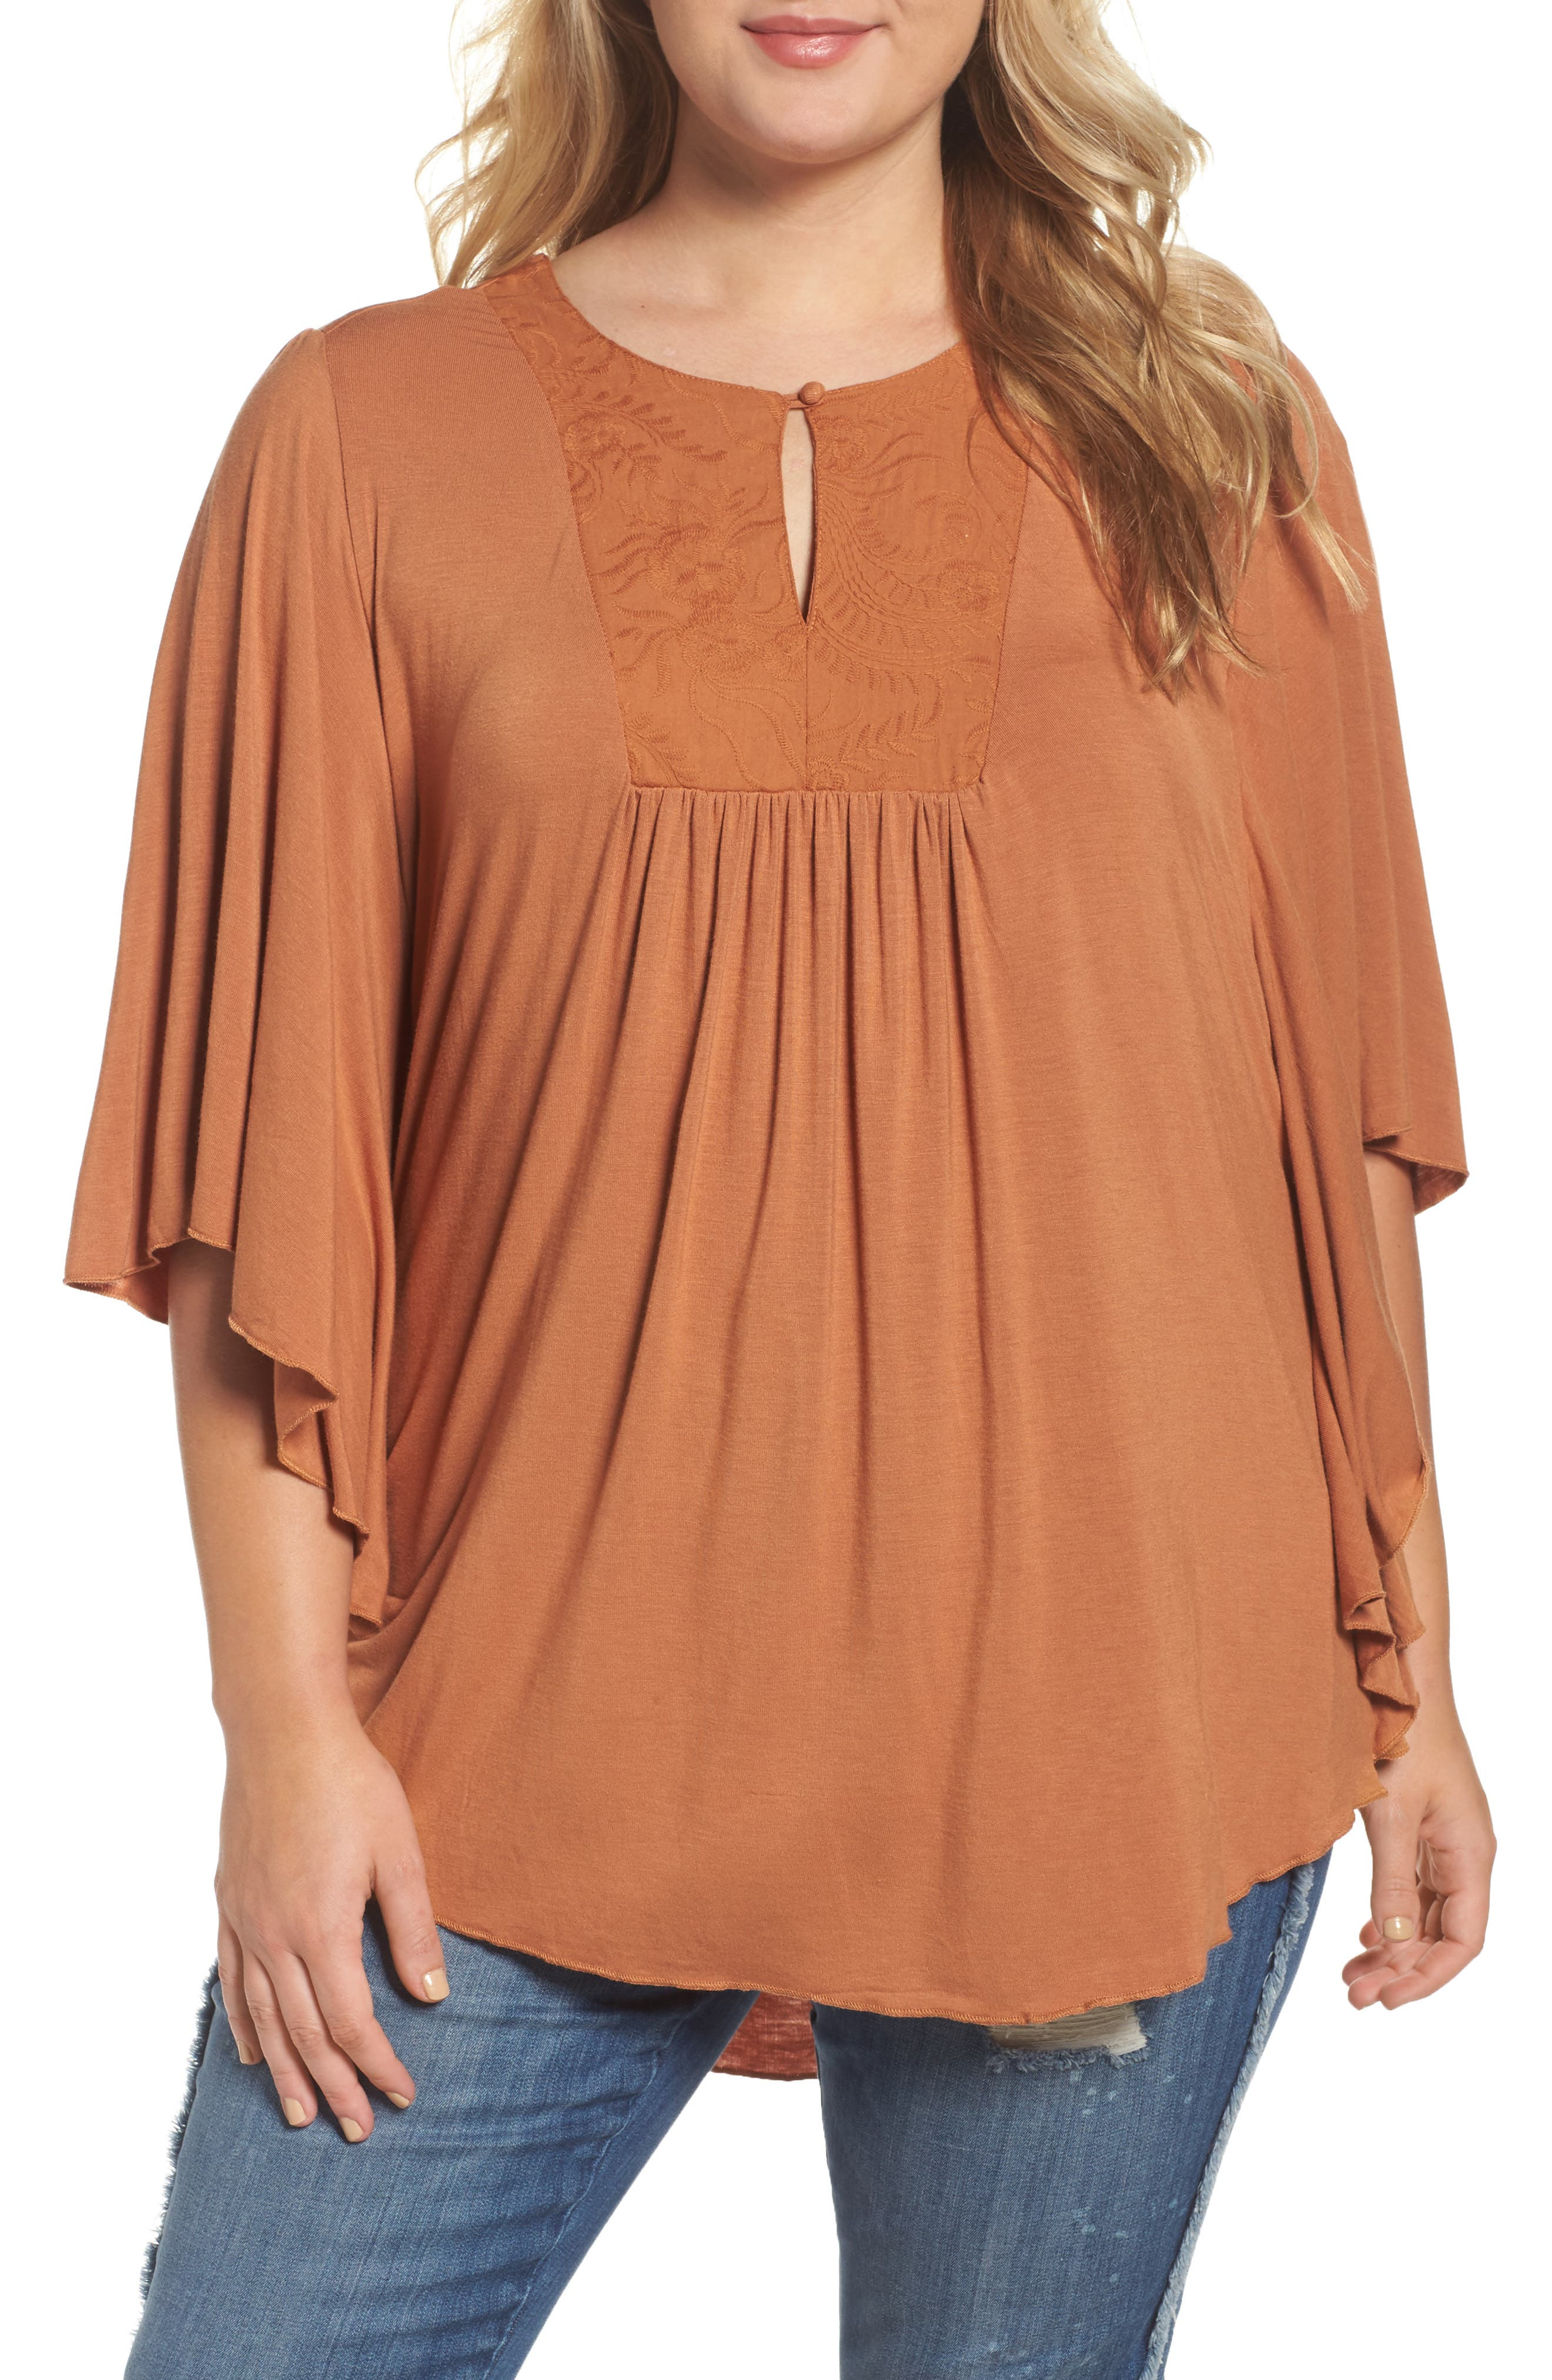 Alternate Image 1 Selected - Melissa McCarthy Seven7 Embroidered Bib Top (Plus Size)